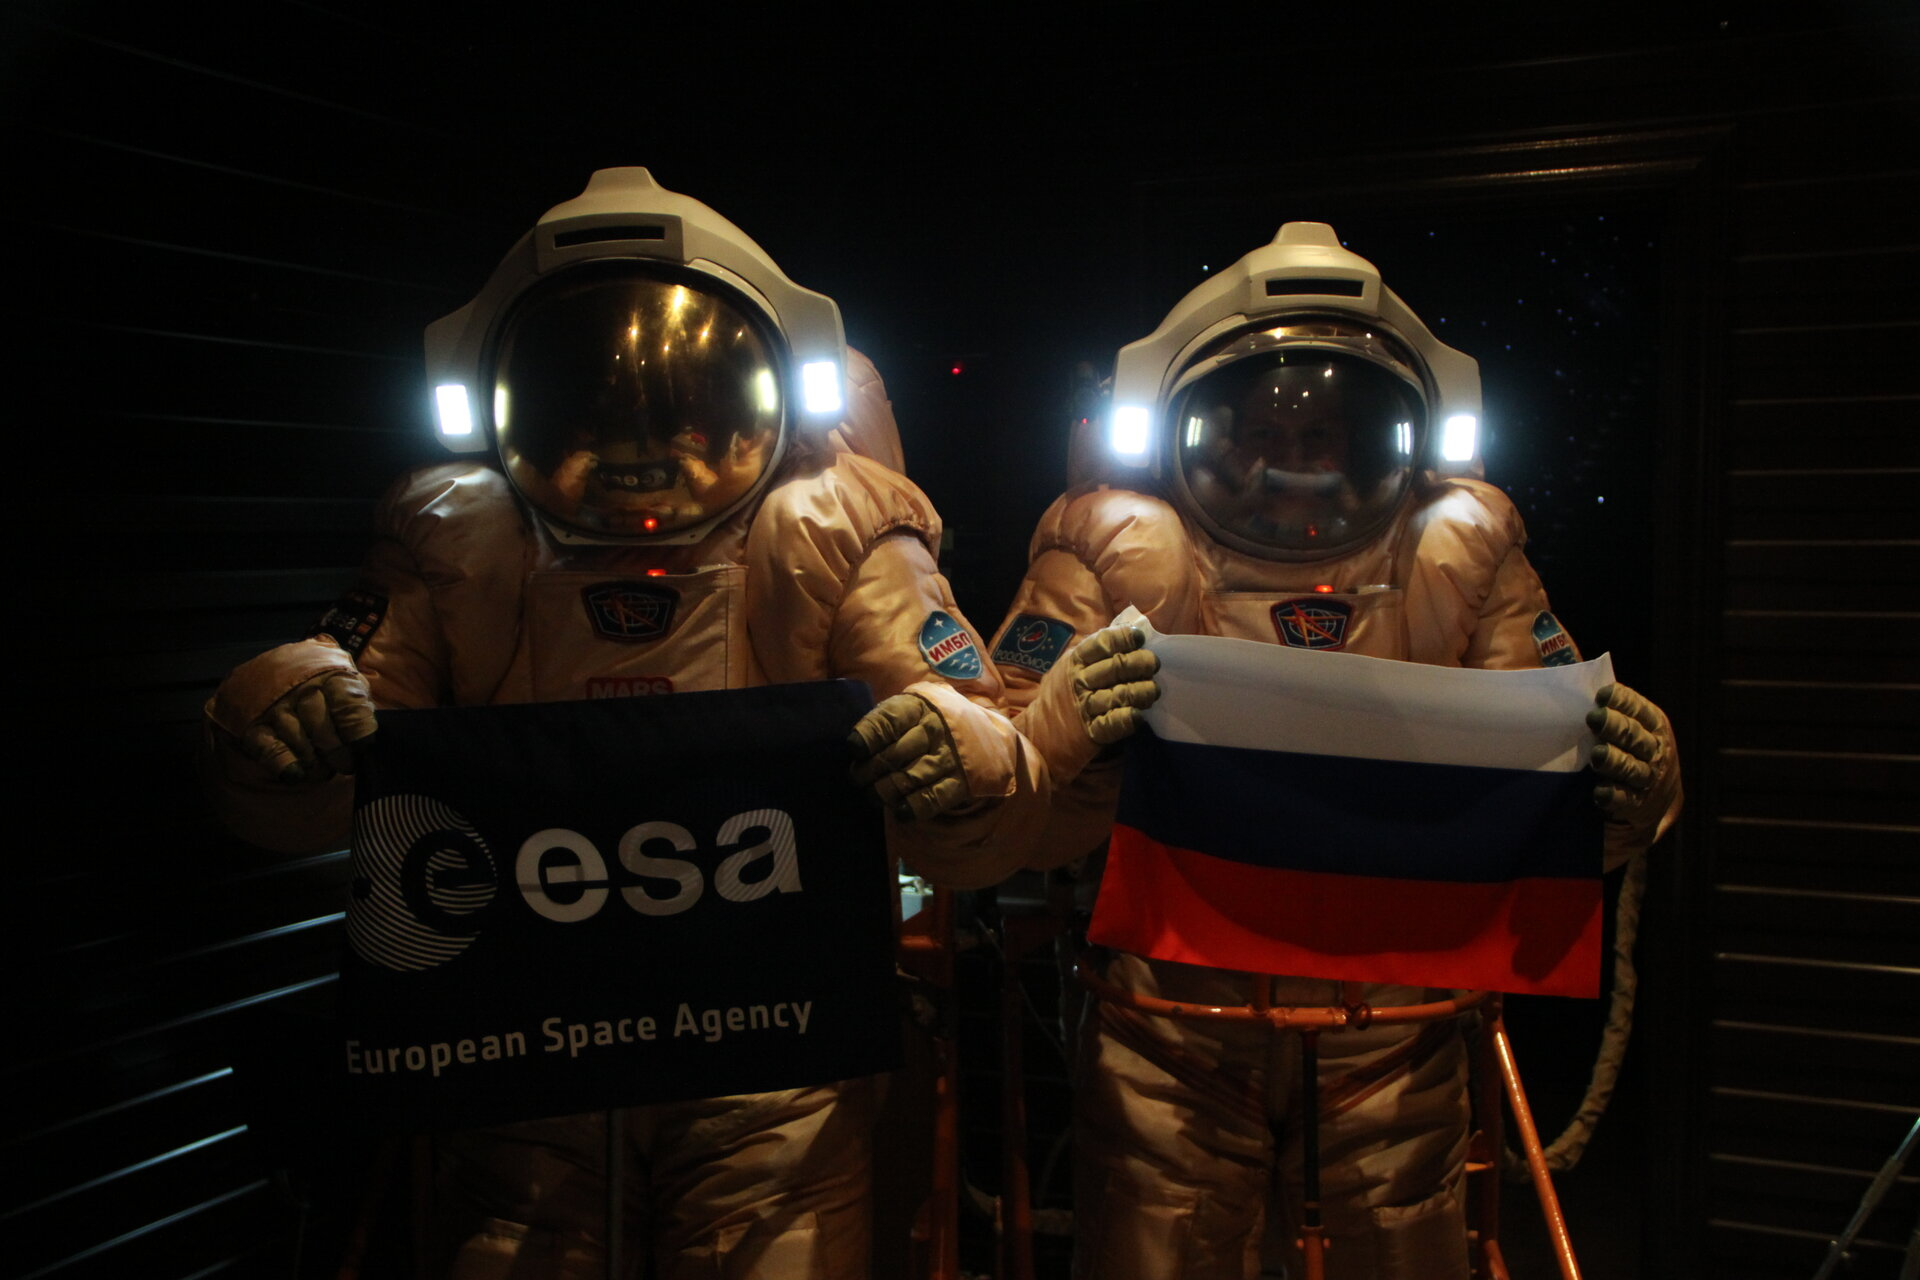 Diego and Alexandr in EVA suits